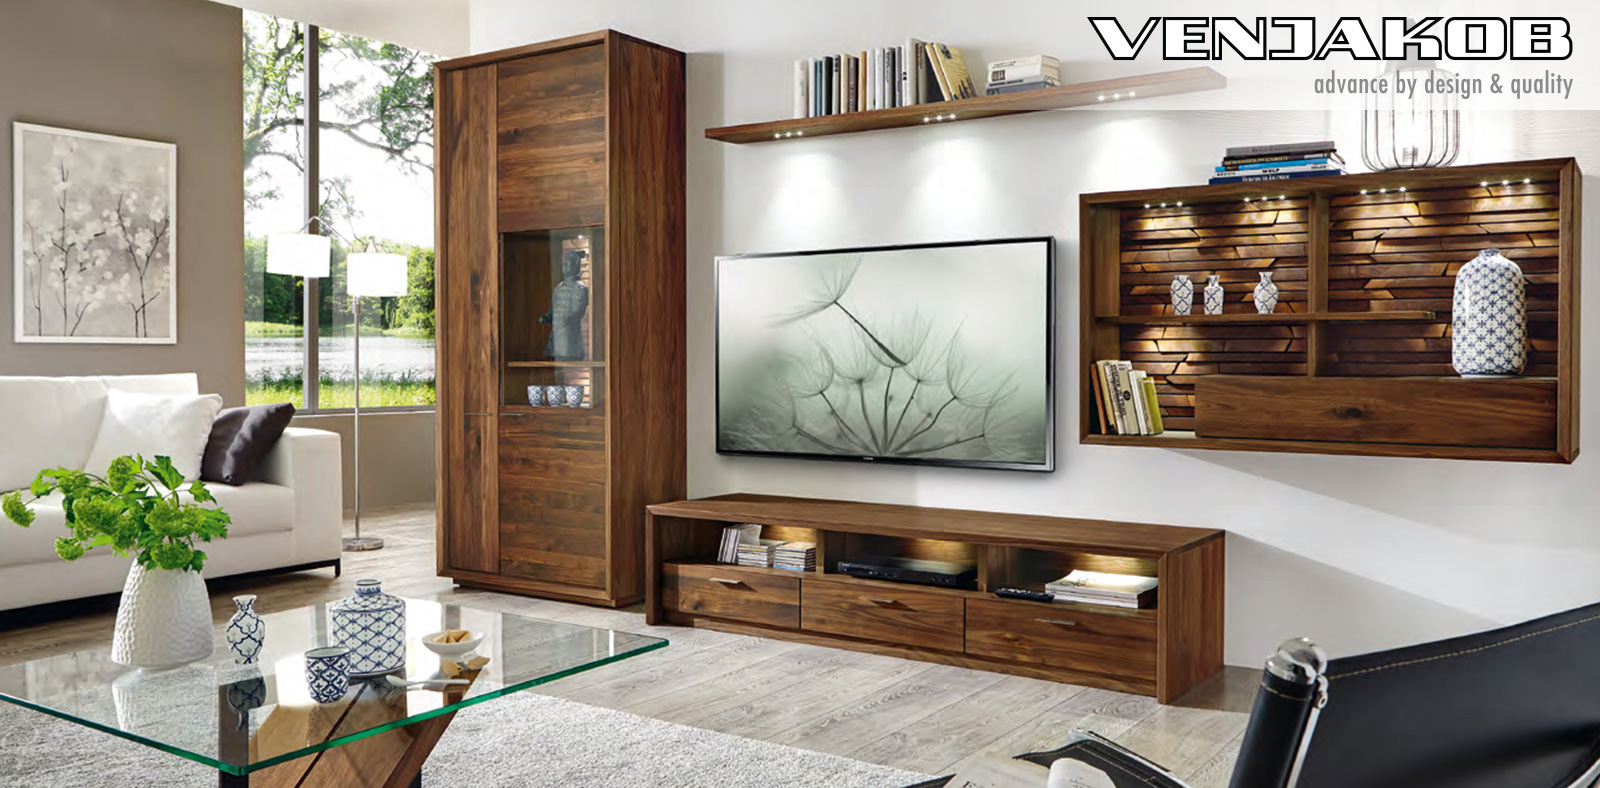 Venjakob Fino Living Collection